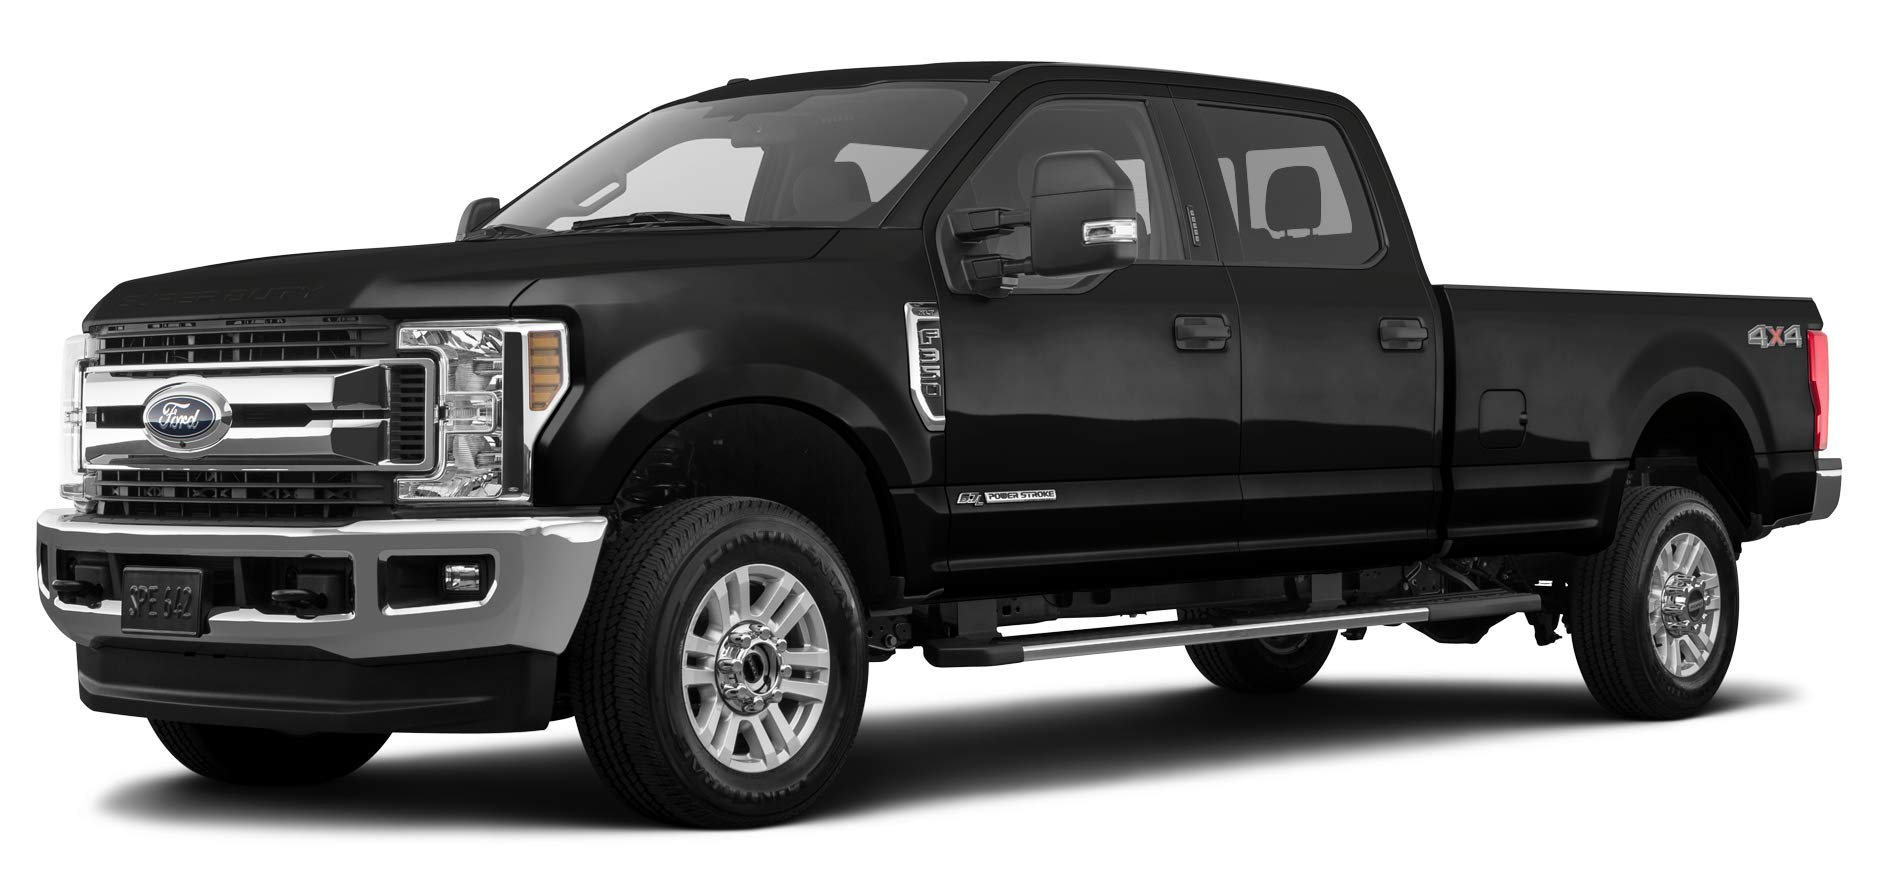 2019 ford f 350 super duty king ranch 2 wheel drive crew cab